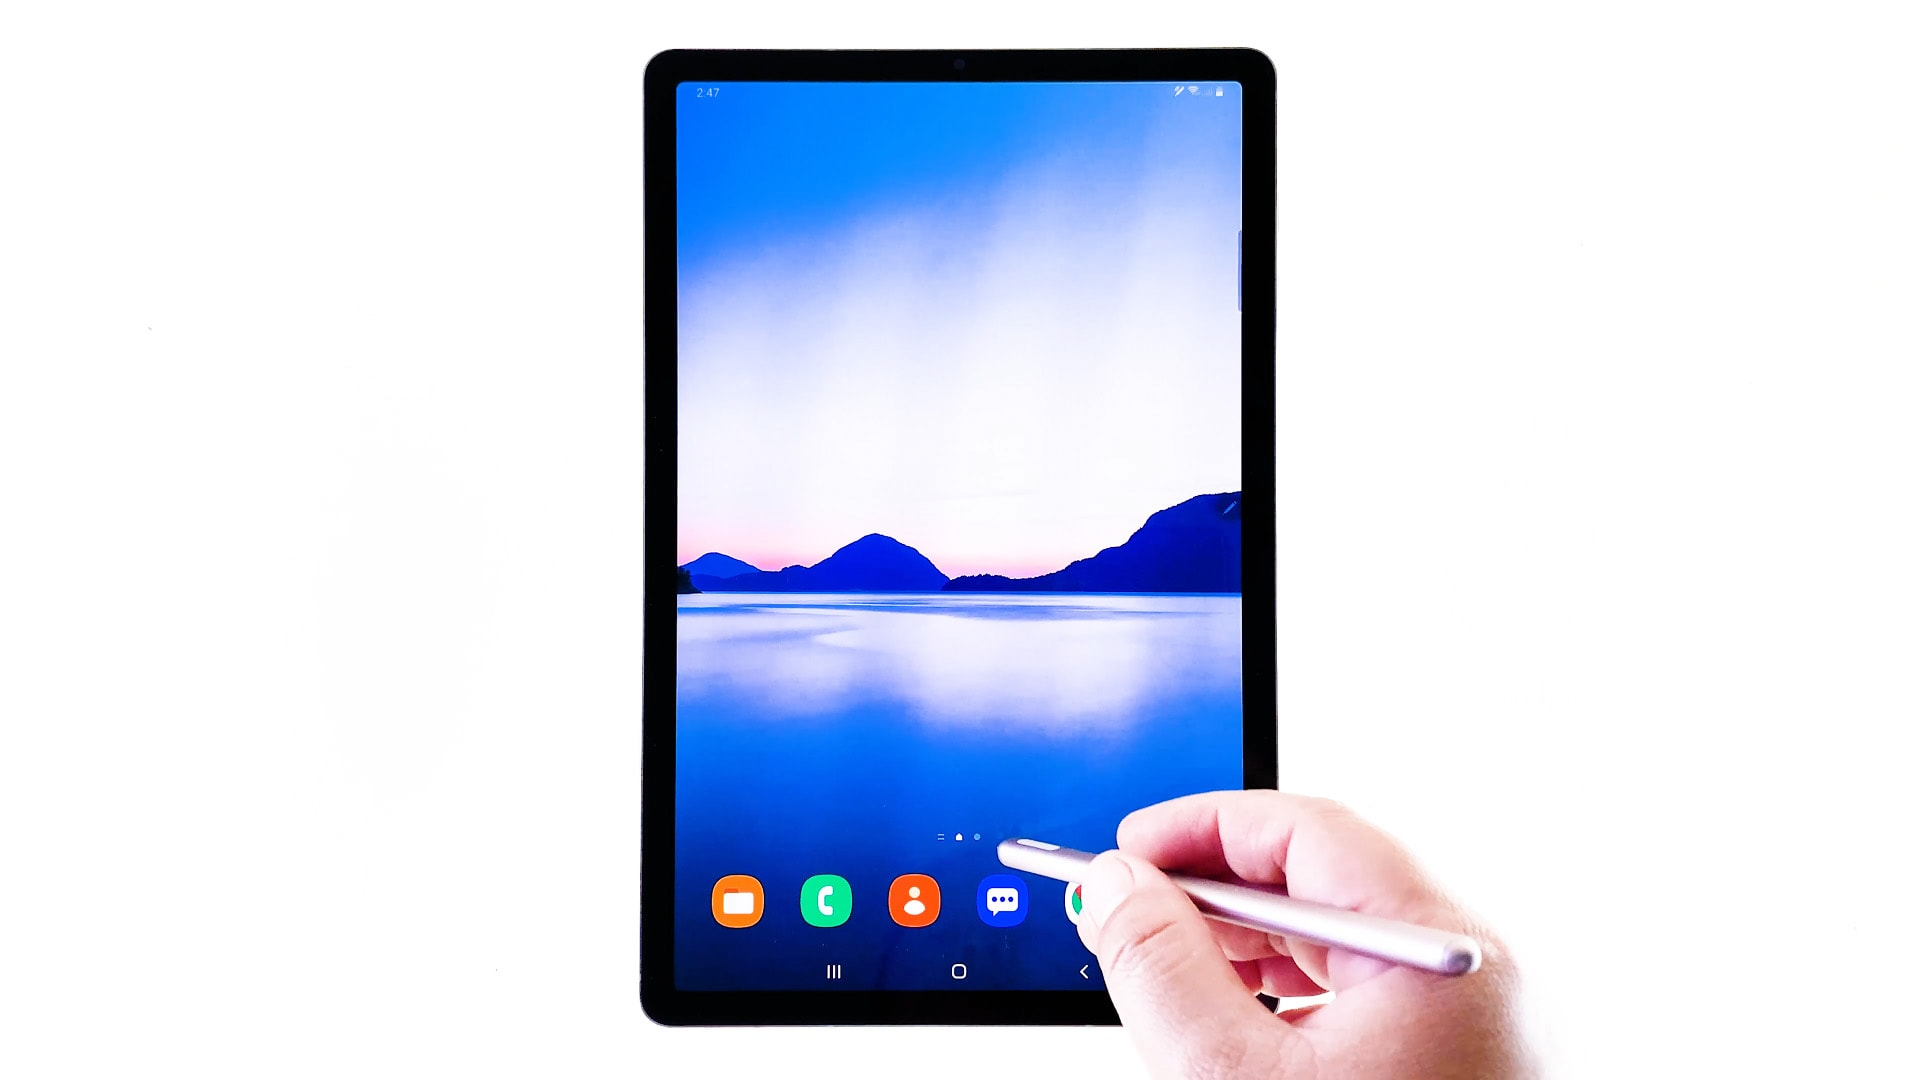 How To Change Font Size And Font Style On Galaxy Tab S6